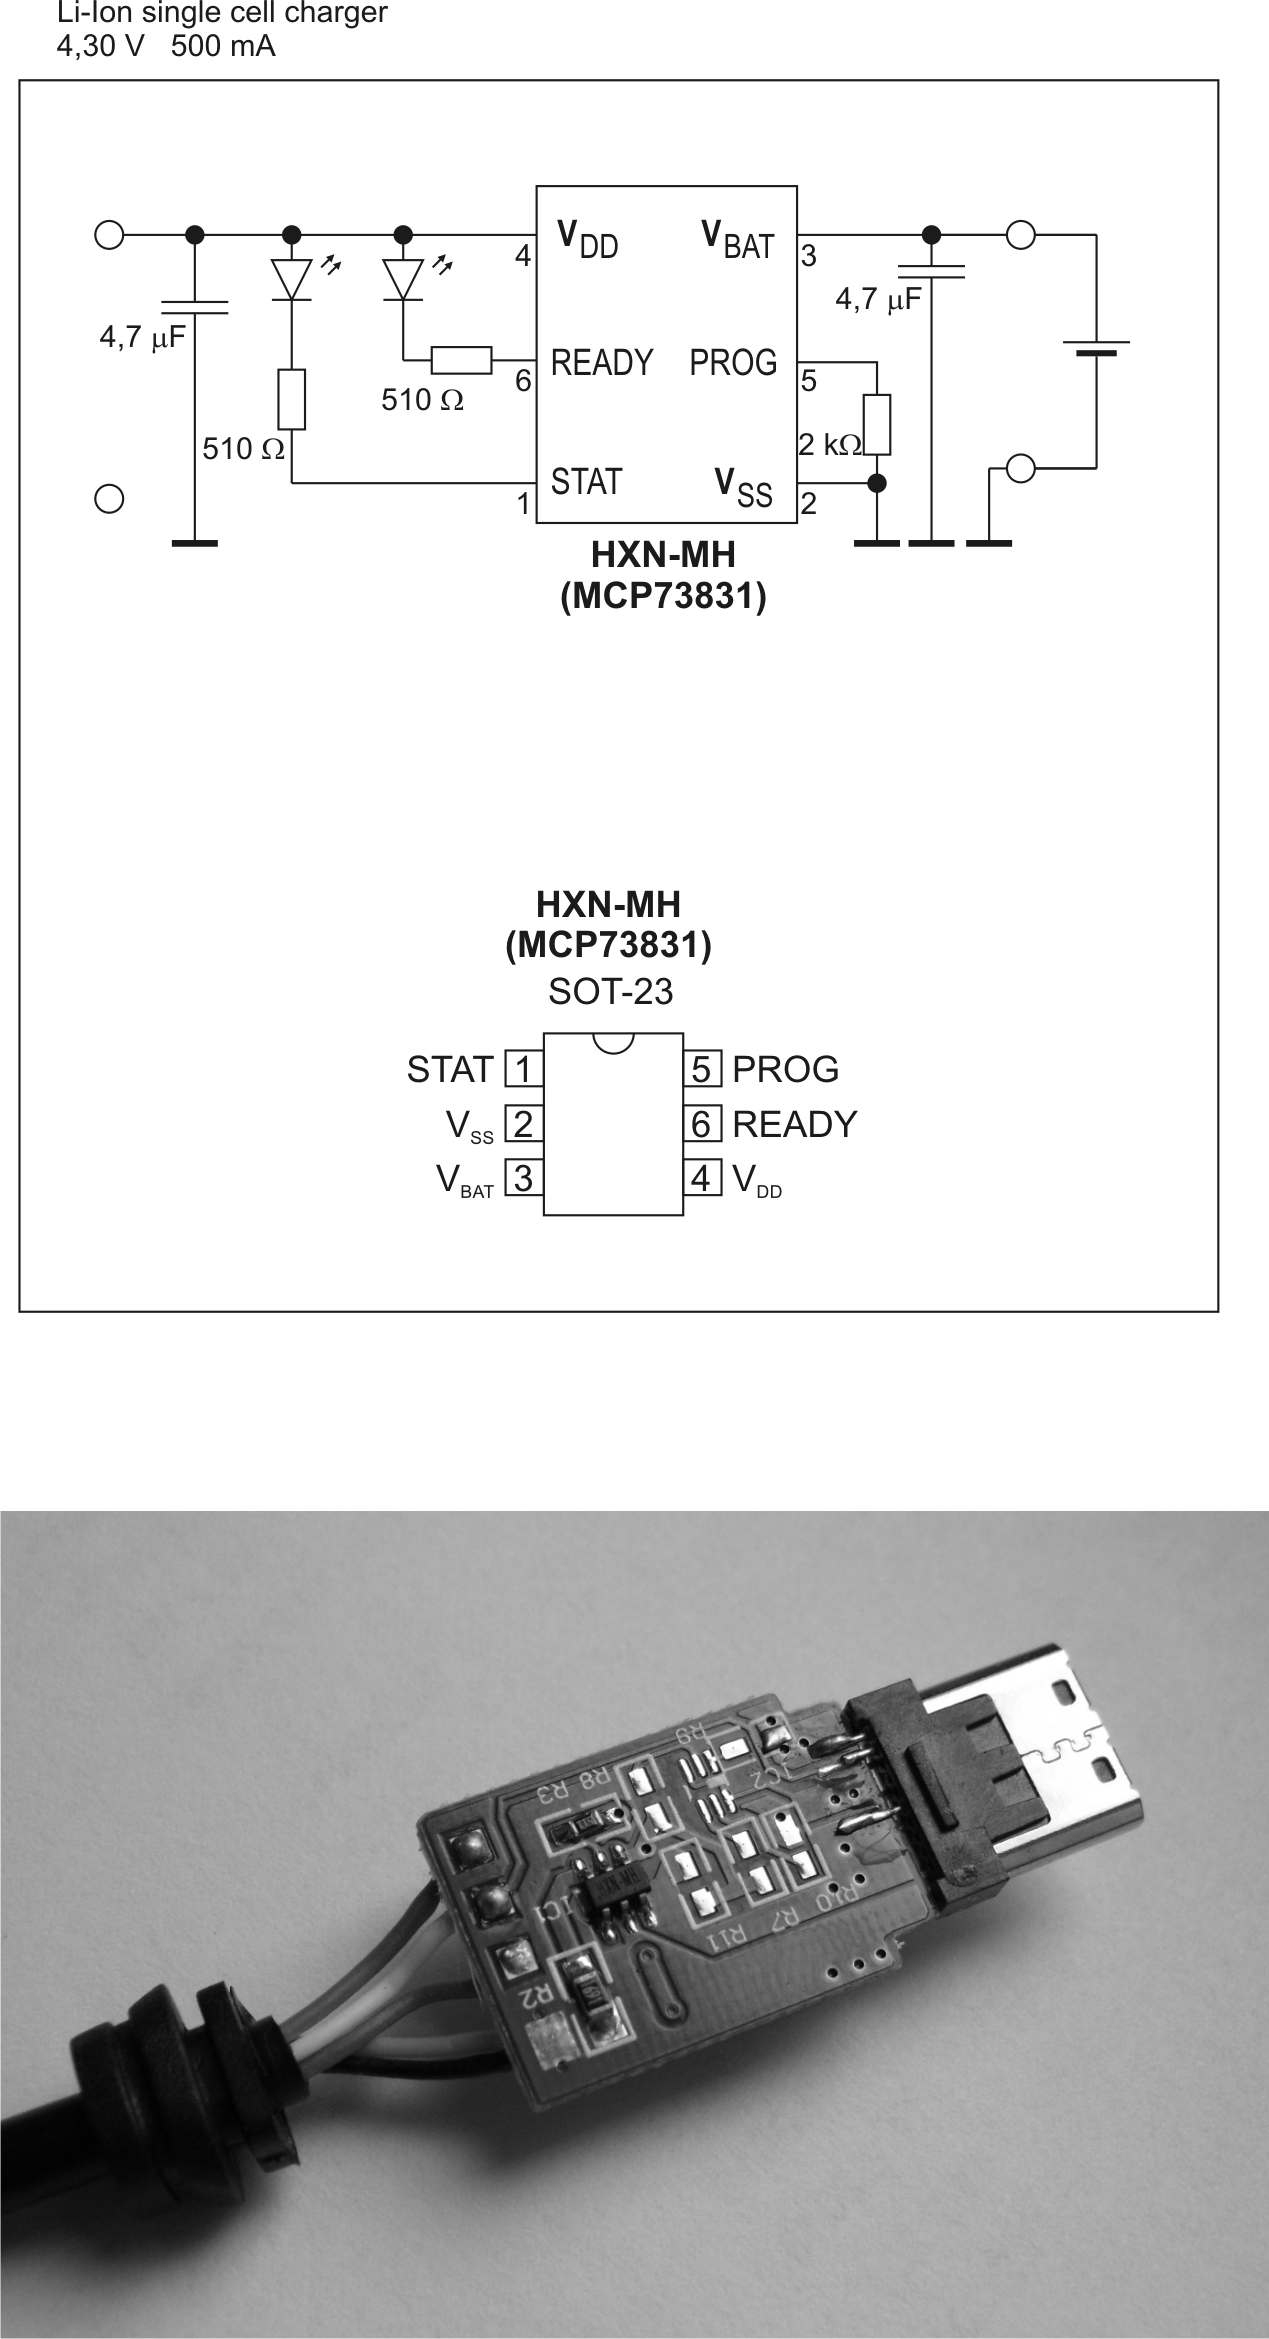 Samsung Suc-C3 Usb Data And Charging Cable Pinout Diagram - Usb Data Cable Wiring Diagram